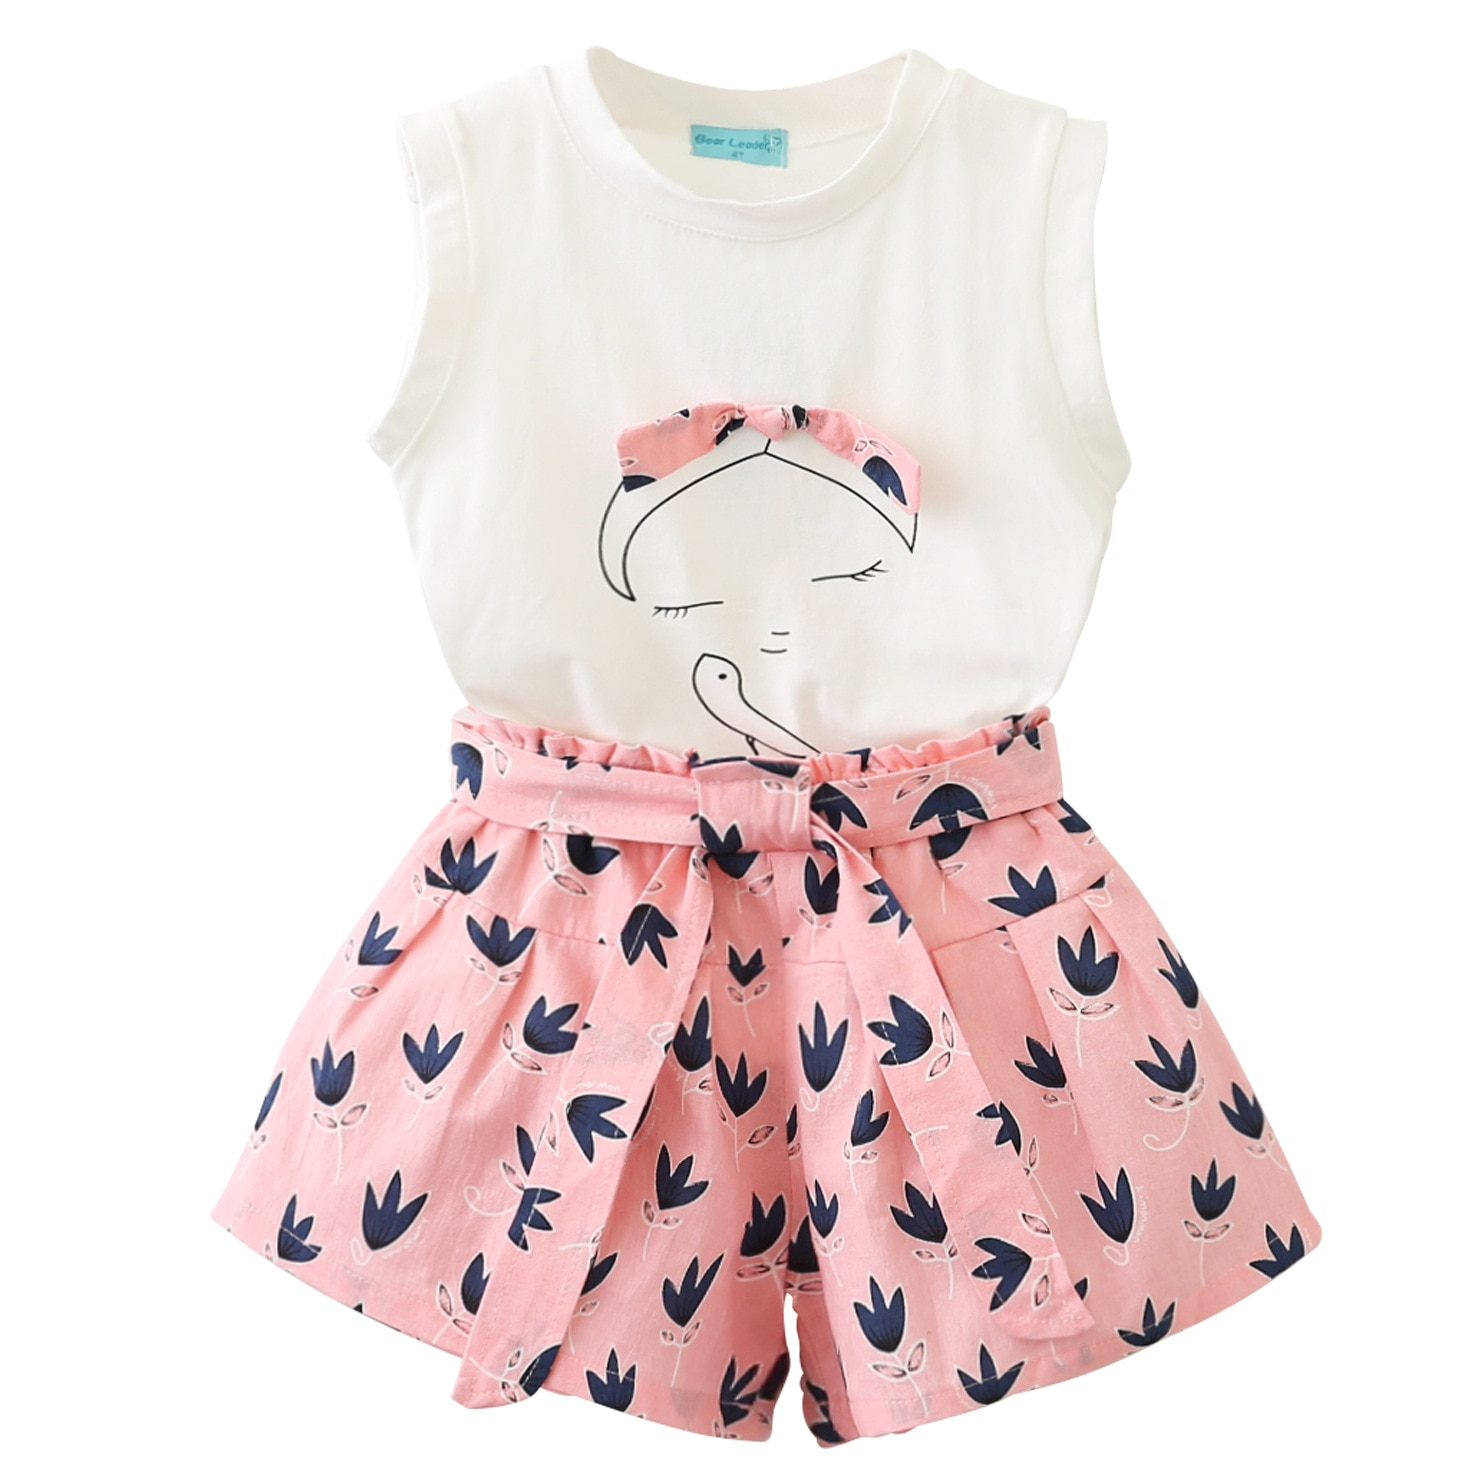 Casual Chidlren Girls Clothing Sets Summer Sleeveless T-shirt Print Bow Shorts for Girl Kids Clothes Children Clothing 2-7 Years